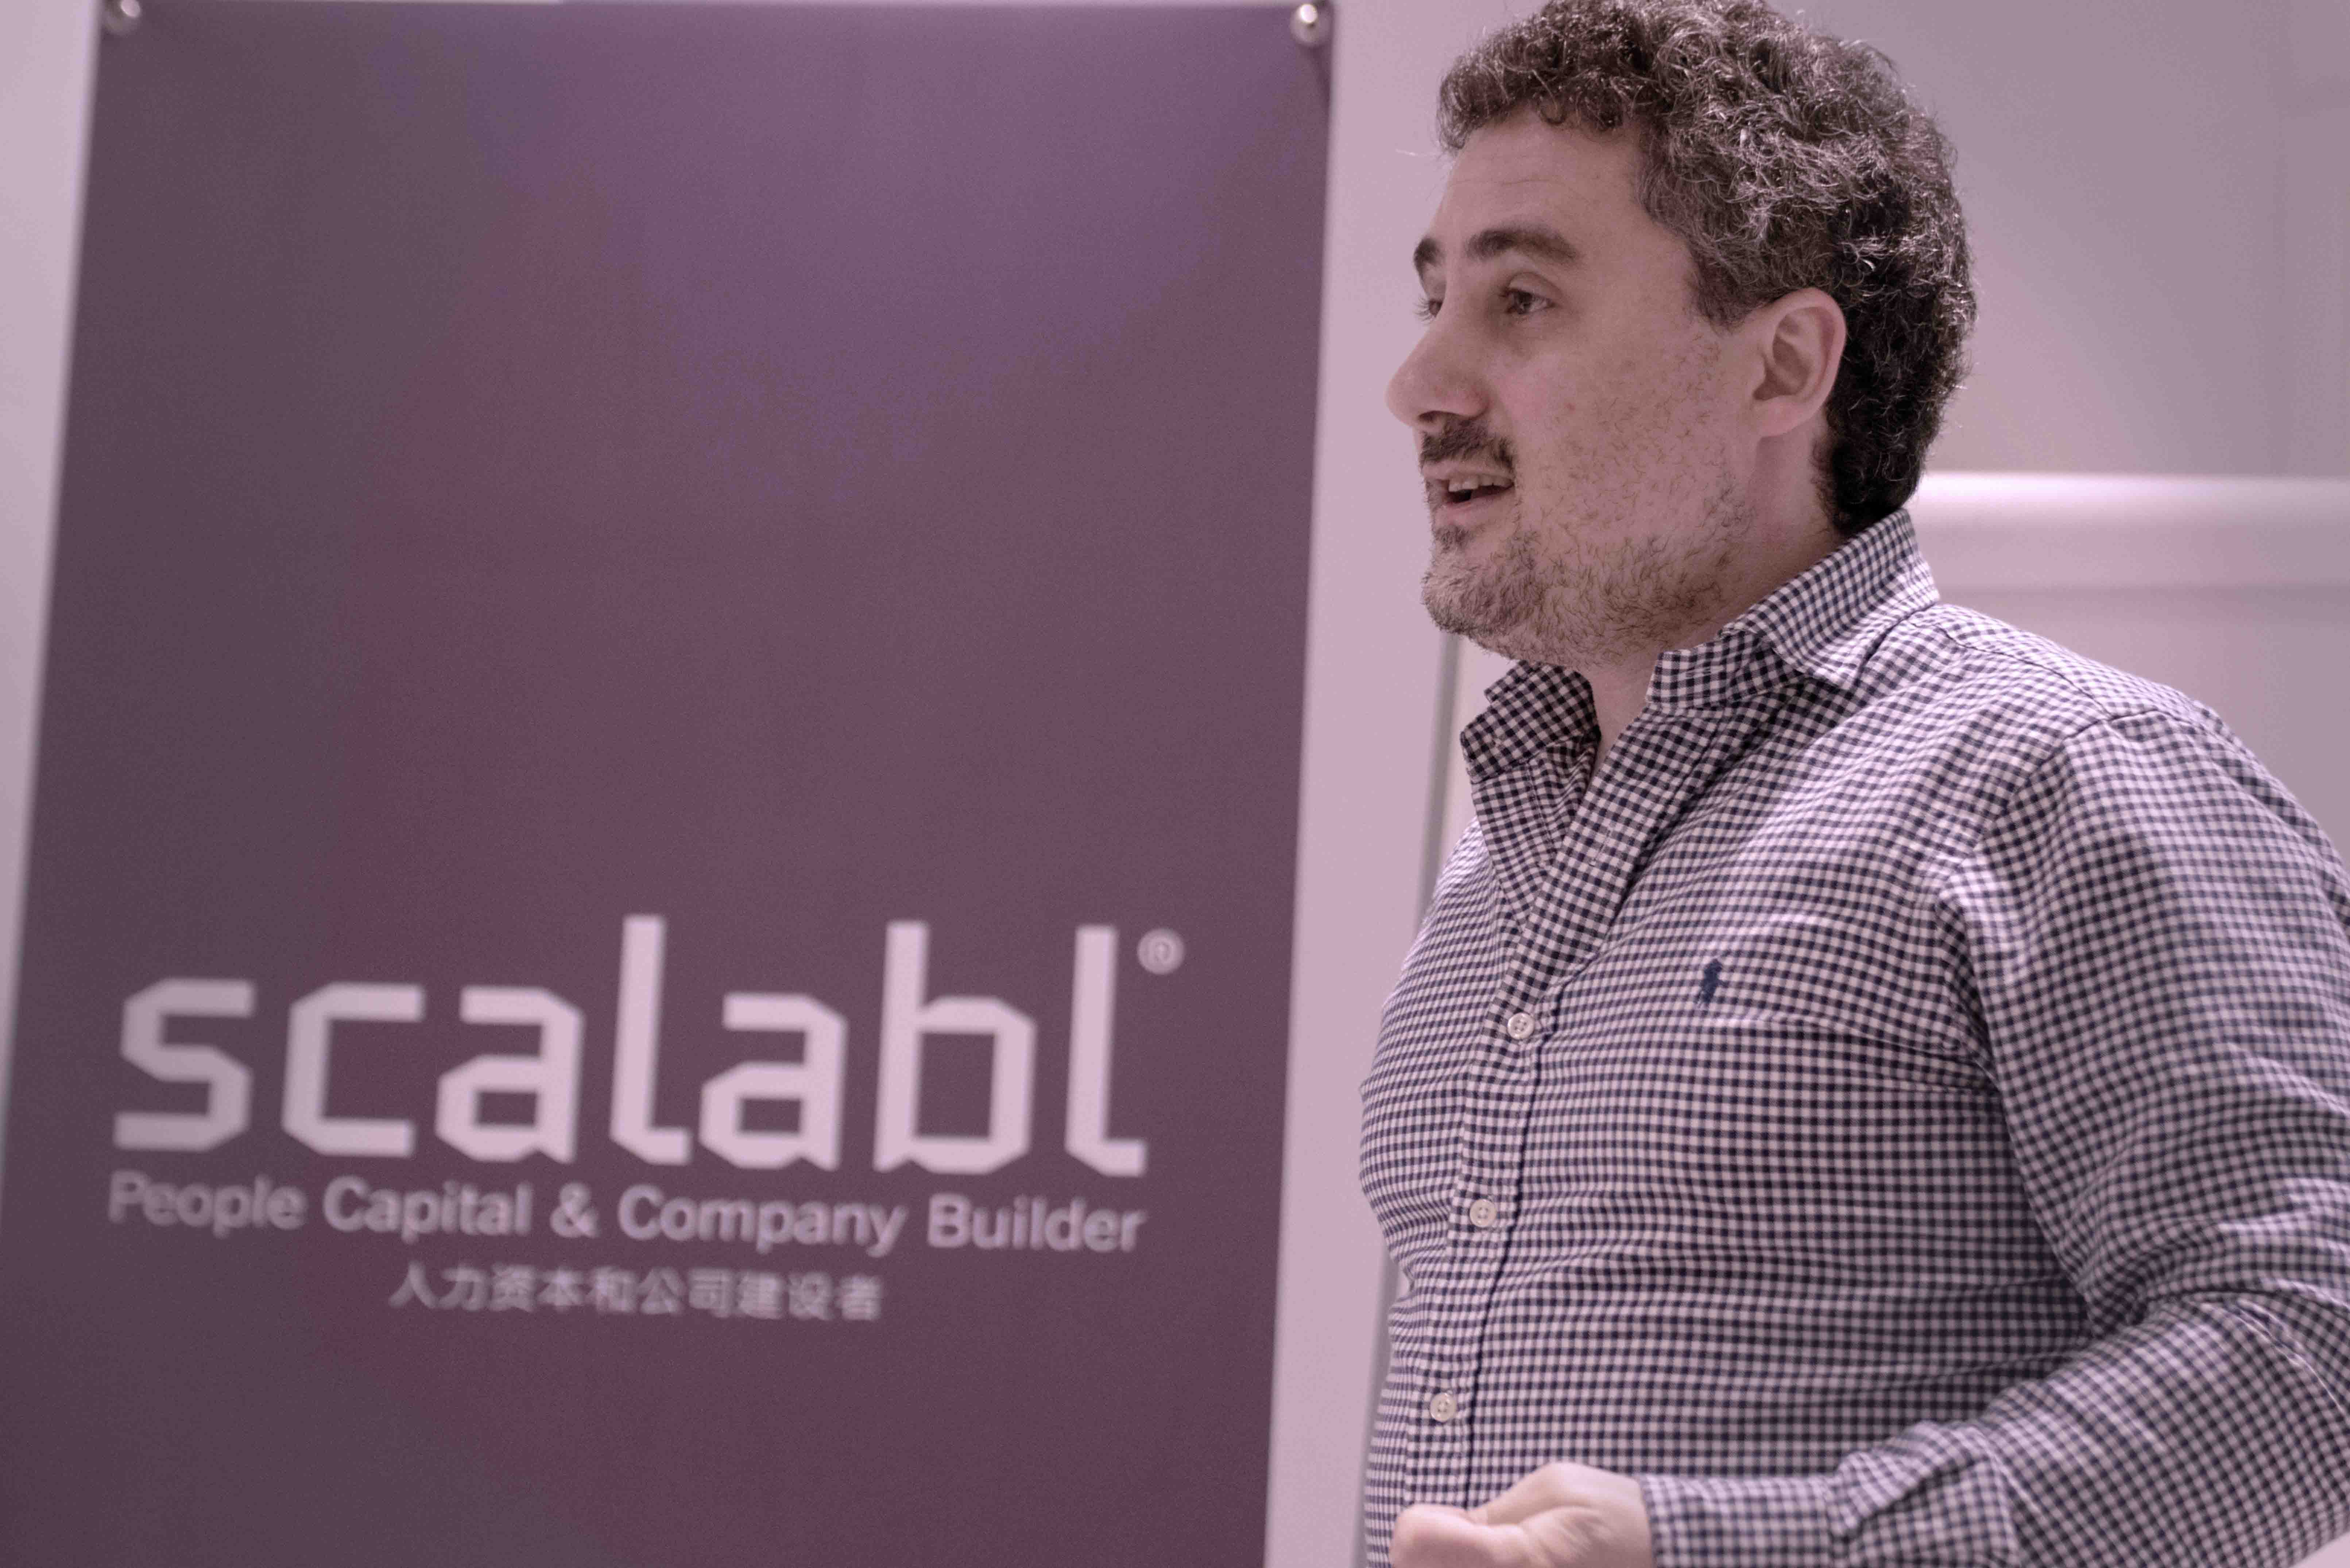 Scalabl Arrives in Spain with Its Course for Entrepreneurs